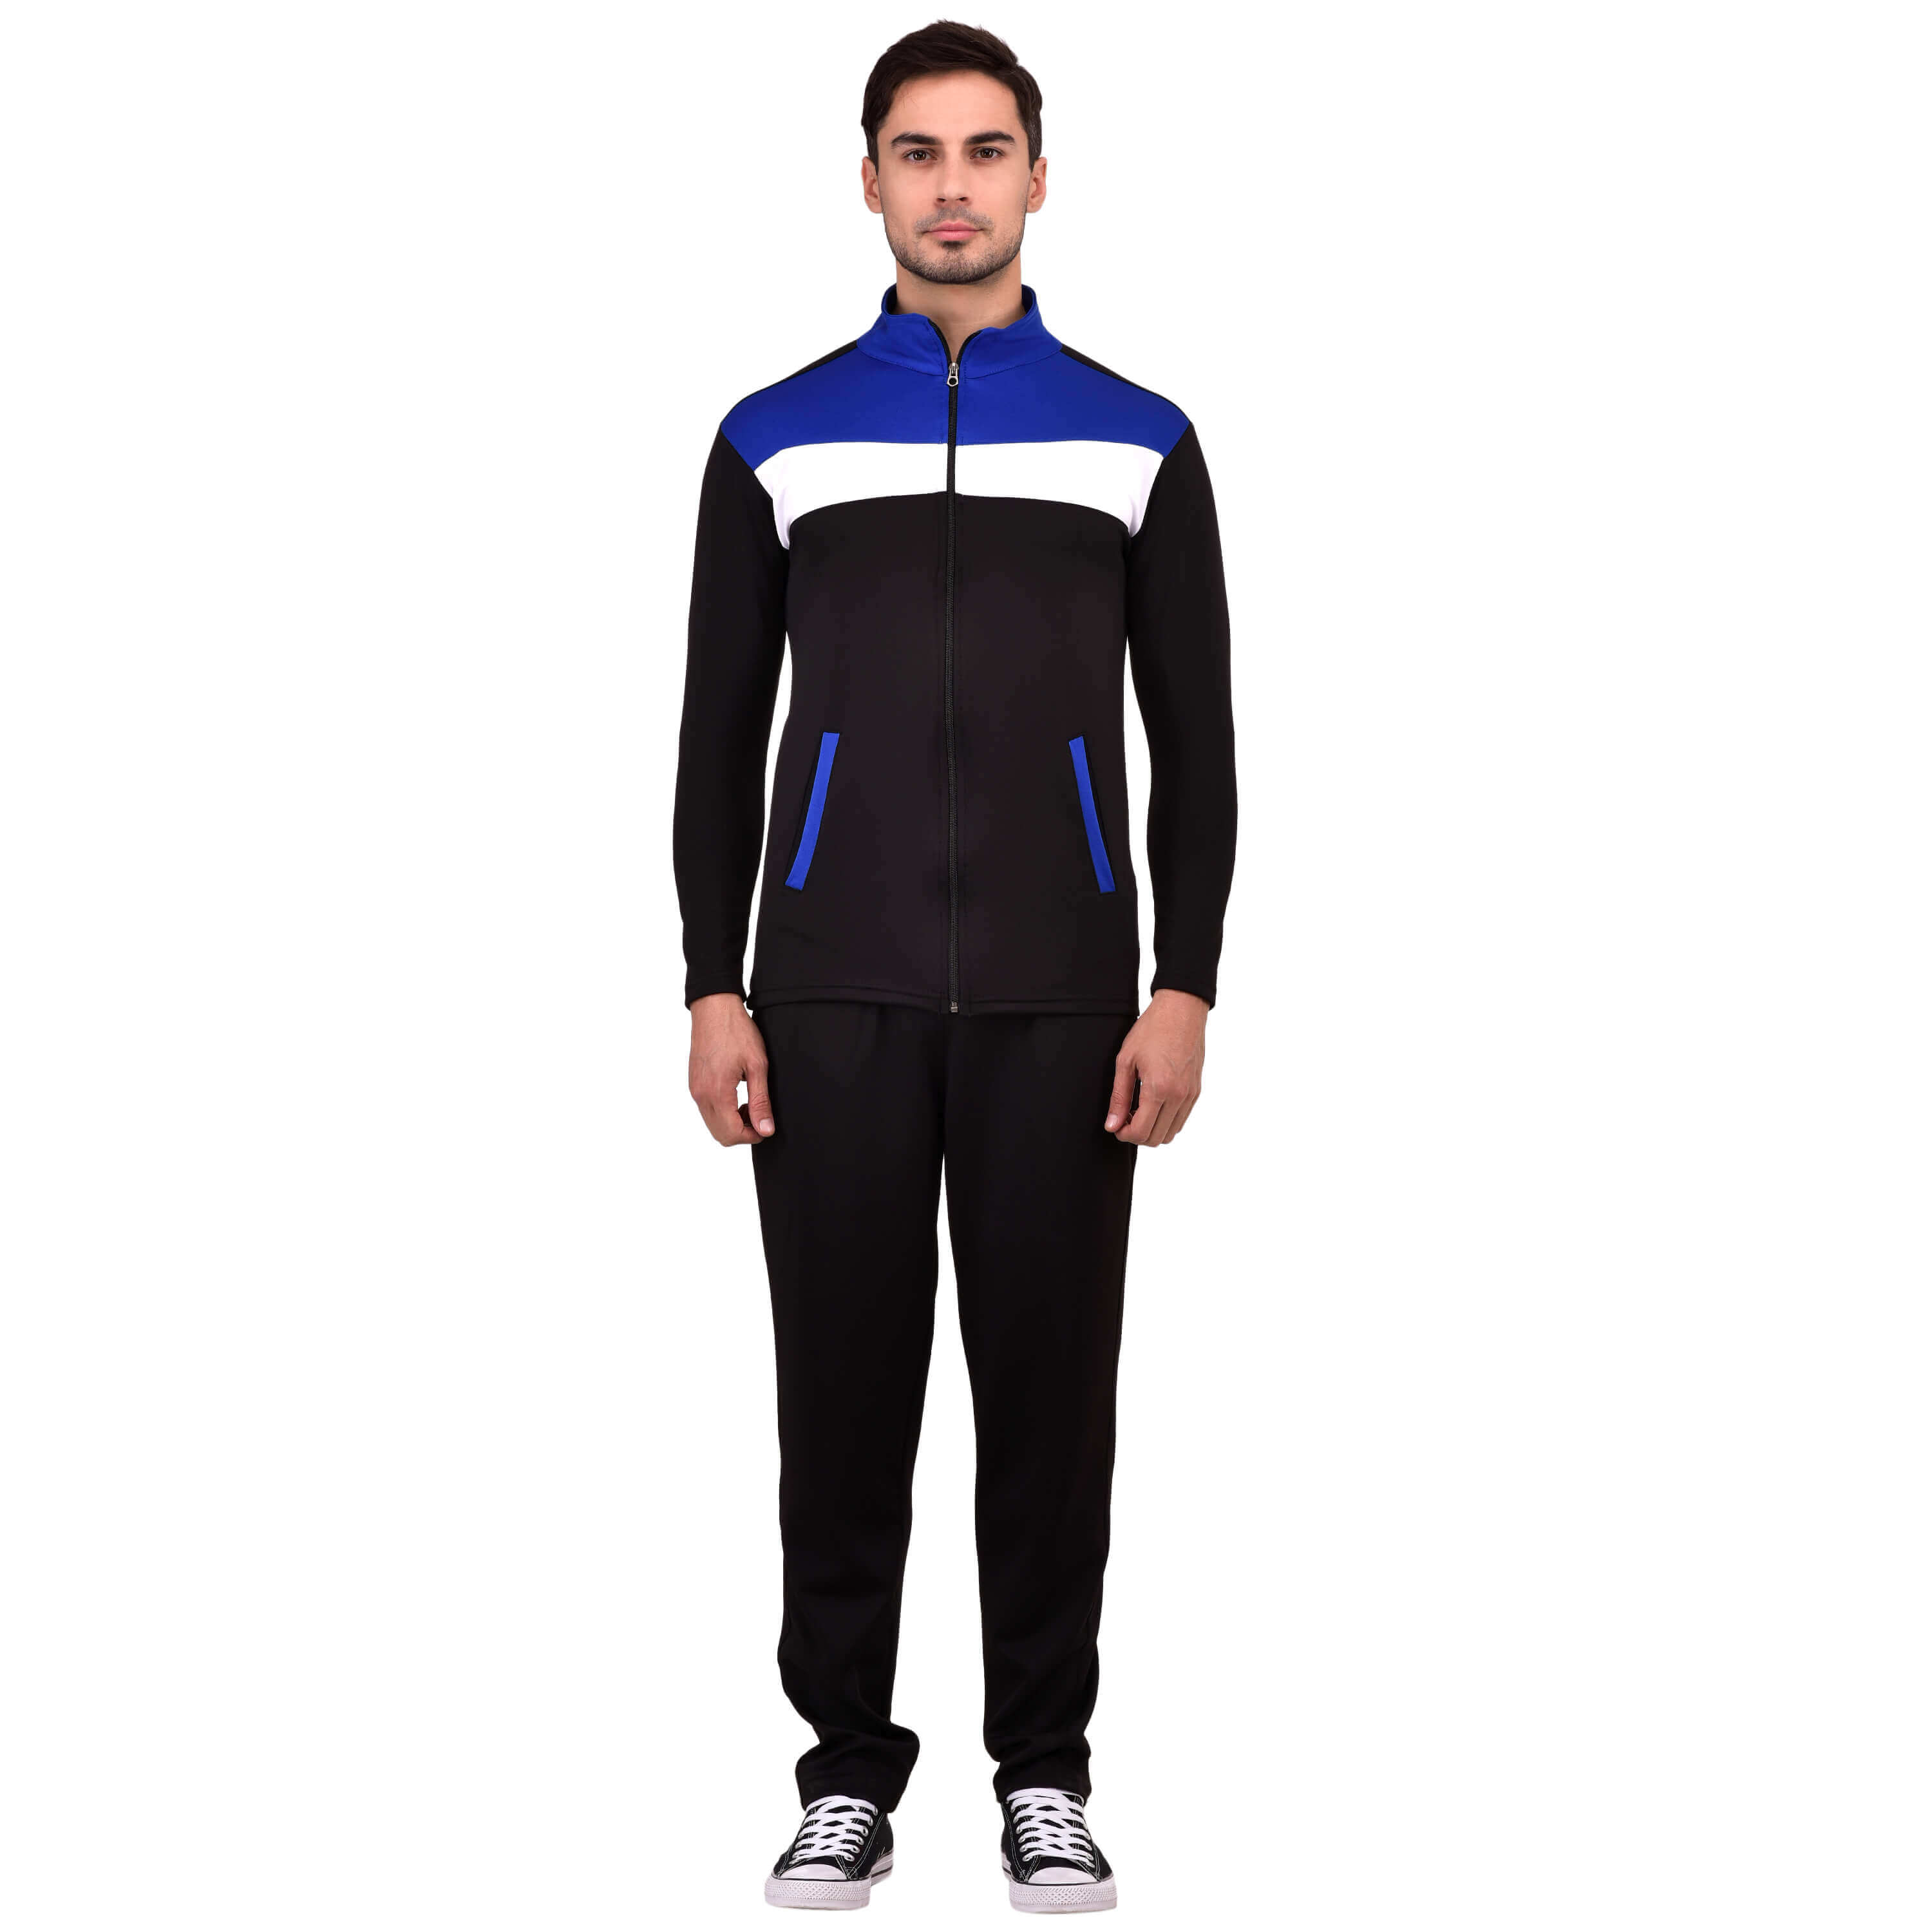 Black Tracksuit Manufacturers in United-states-of-america